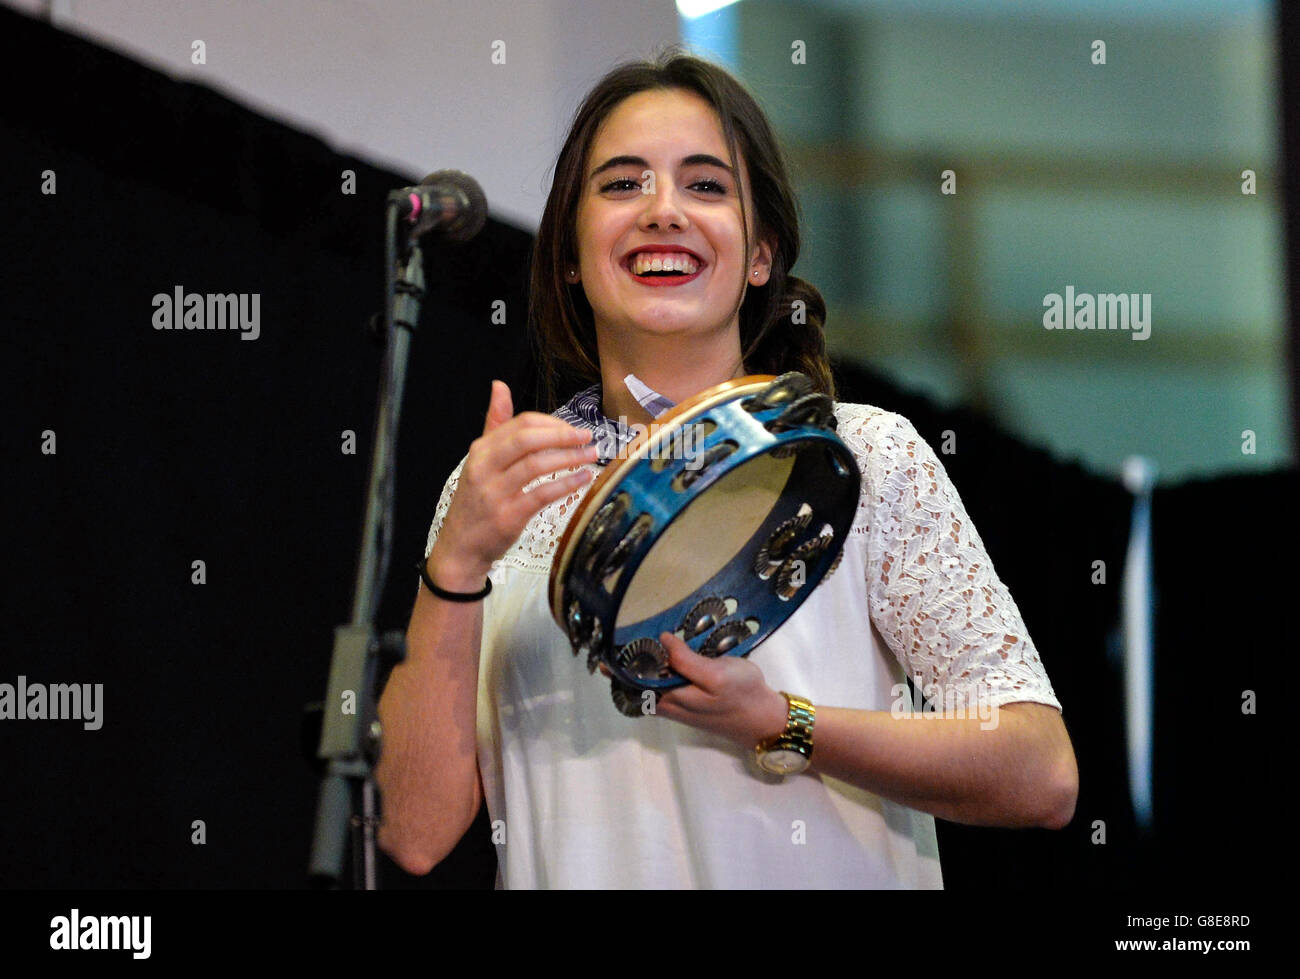 (160629) -- WASHINGTON D.C., June 29, 2016 (Xinhua) -- A woman performs during the opening ceremony of 2016 Smithsonian - Stock Image